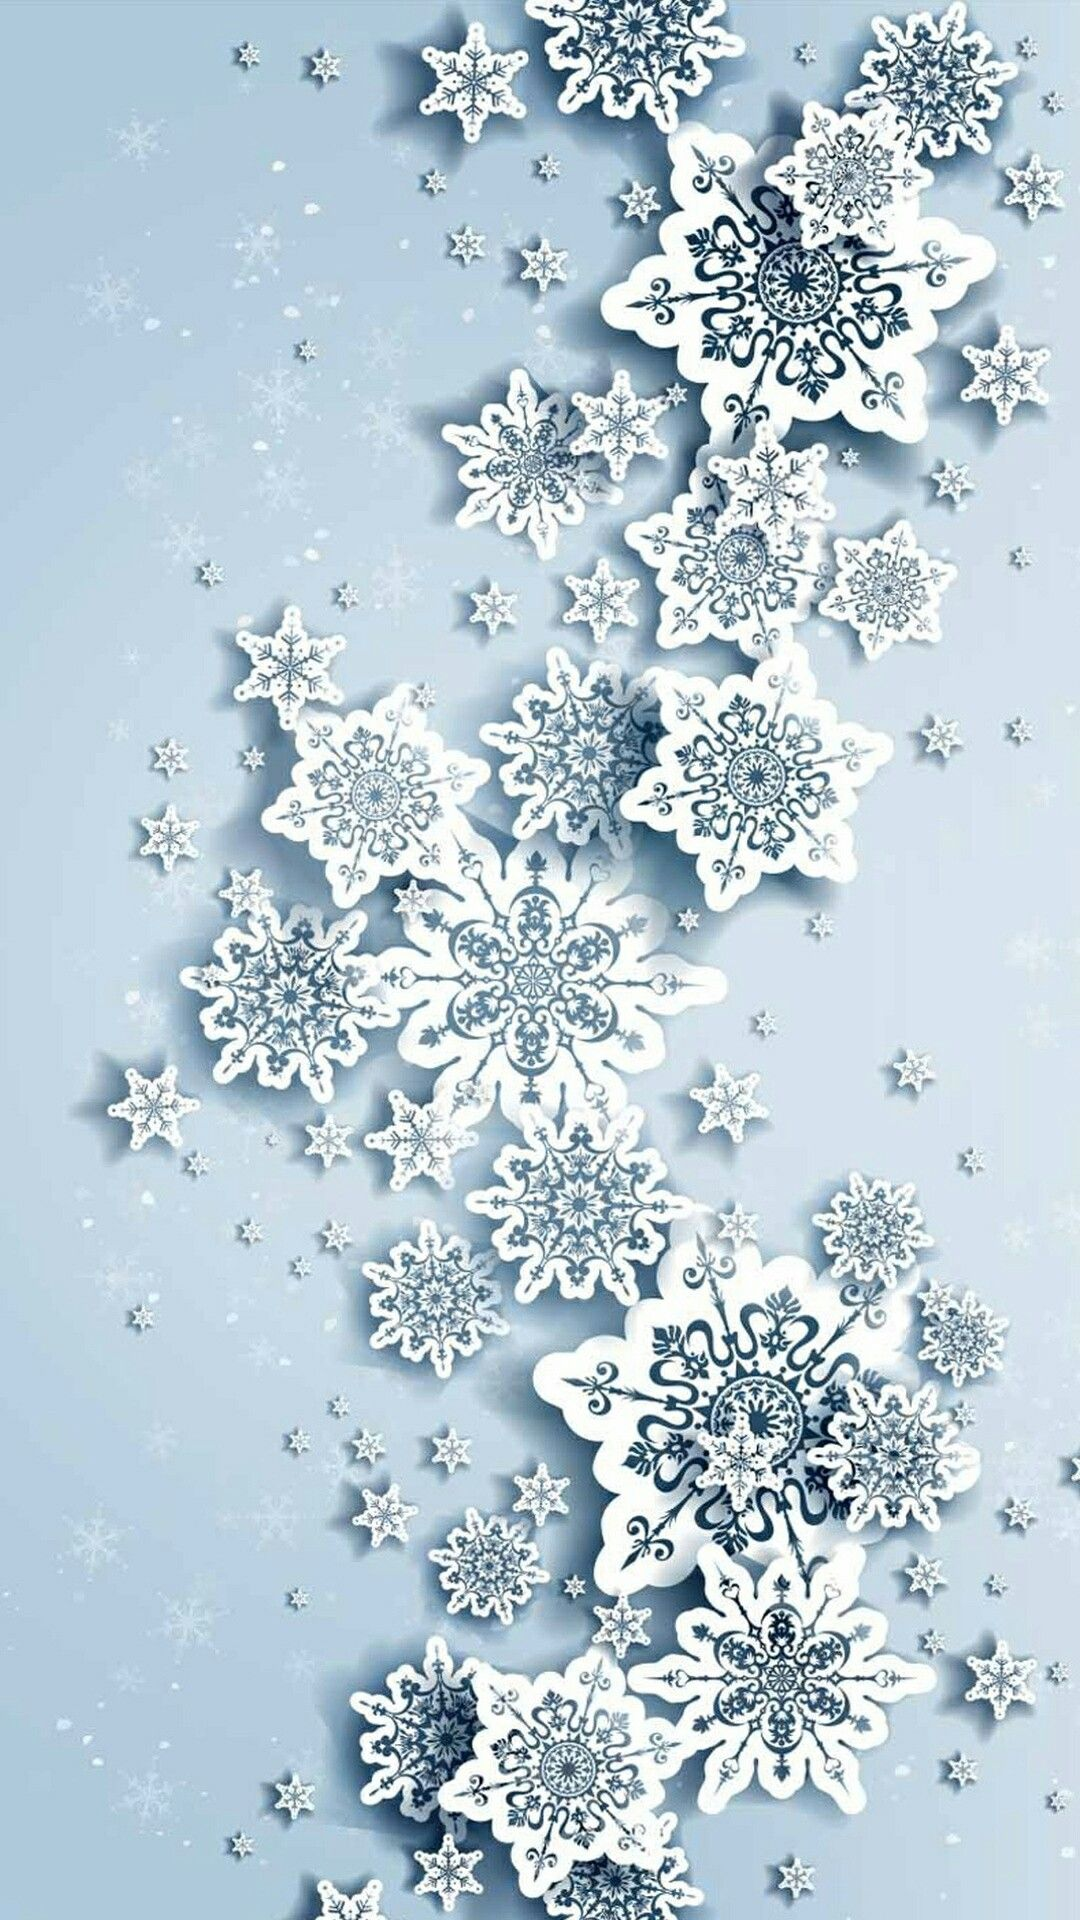 Snowflake Mobile Background Image In 2019 Winter Wallpaper